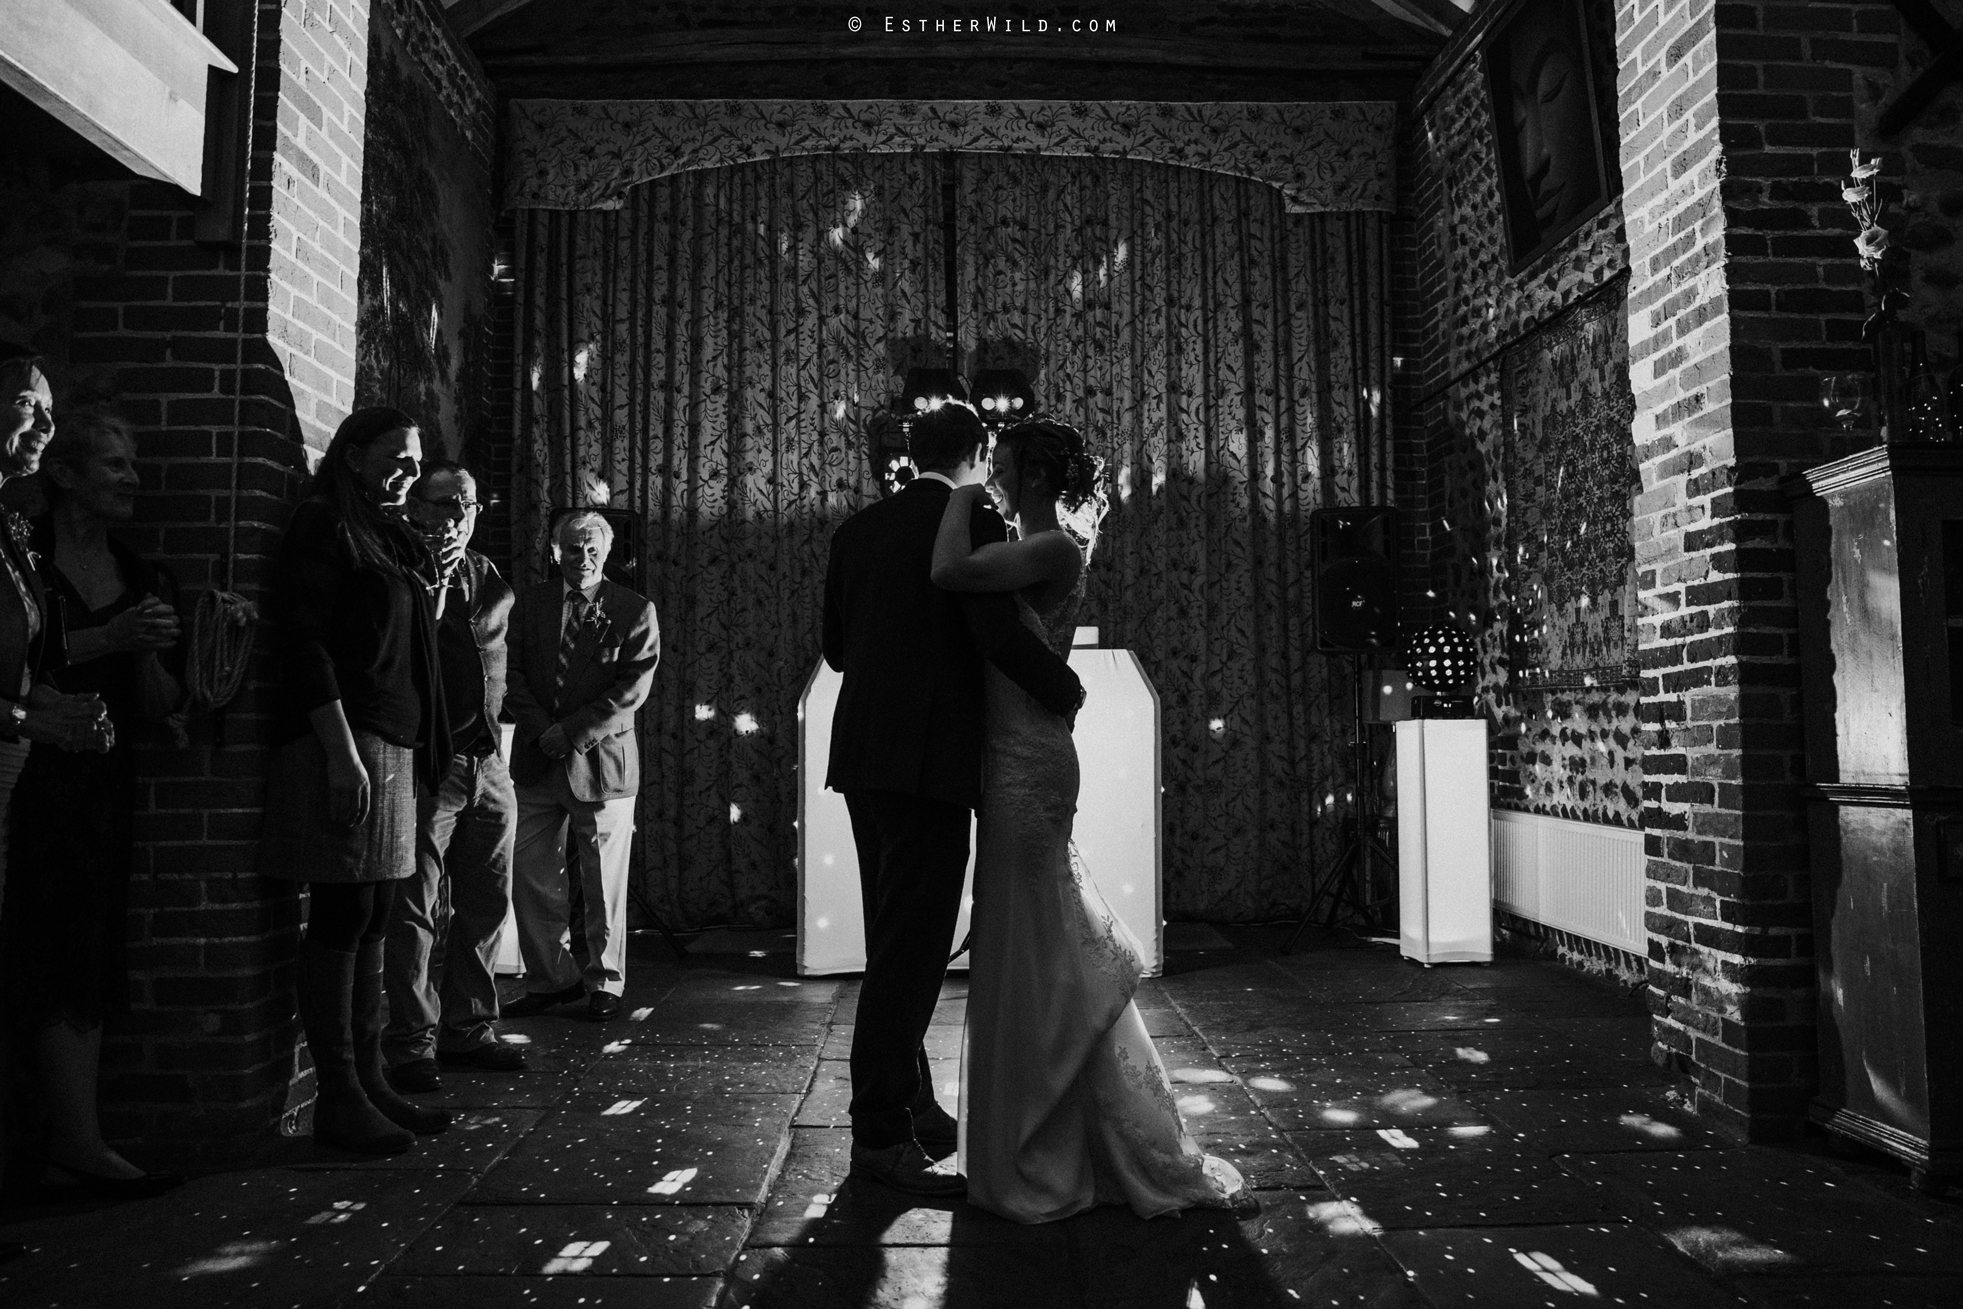 Wedding_Photographer_Chaucer_Barn_Holt_Norfolk_Country_Rustic_Venue_Copyright_Esther_Wild_IMG_2352.jpg